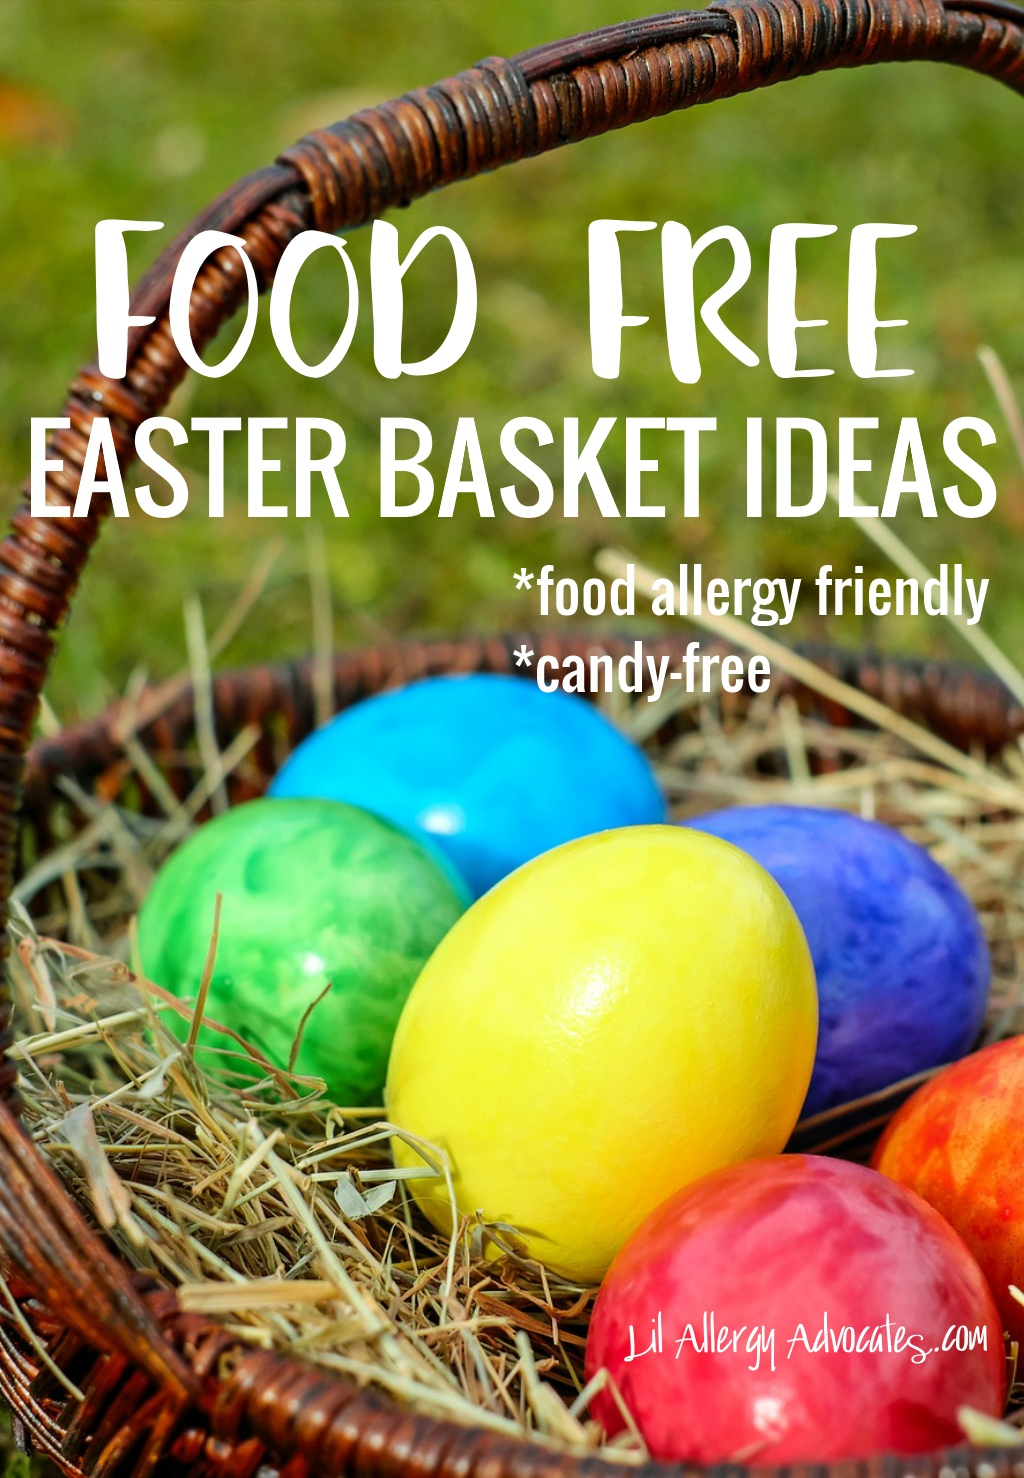 Food free easter basket ideas lil allergy advocates food free easter basket ideas negle Gallery